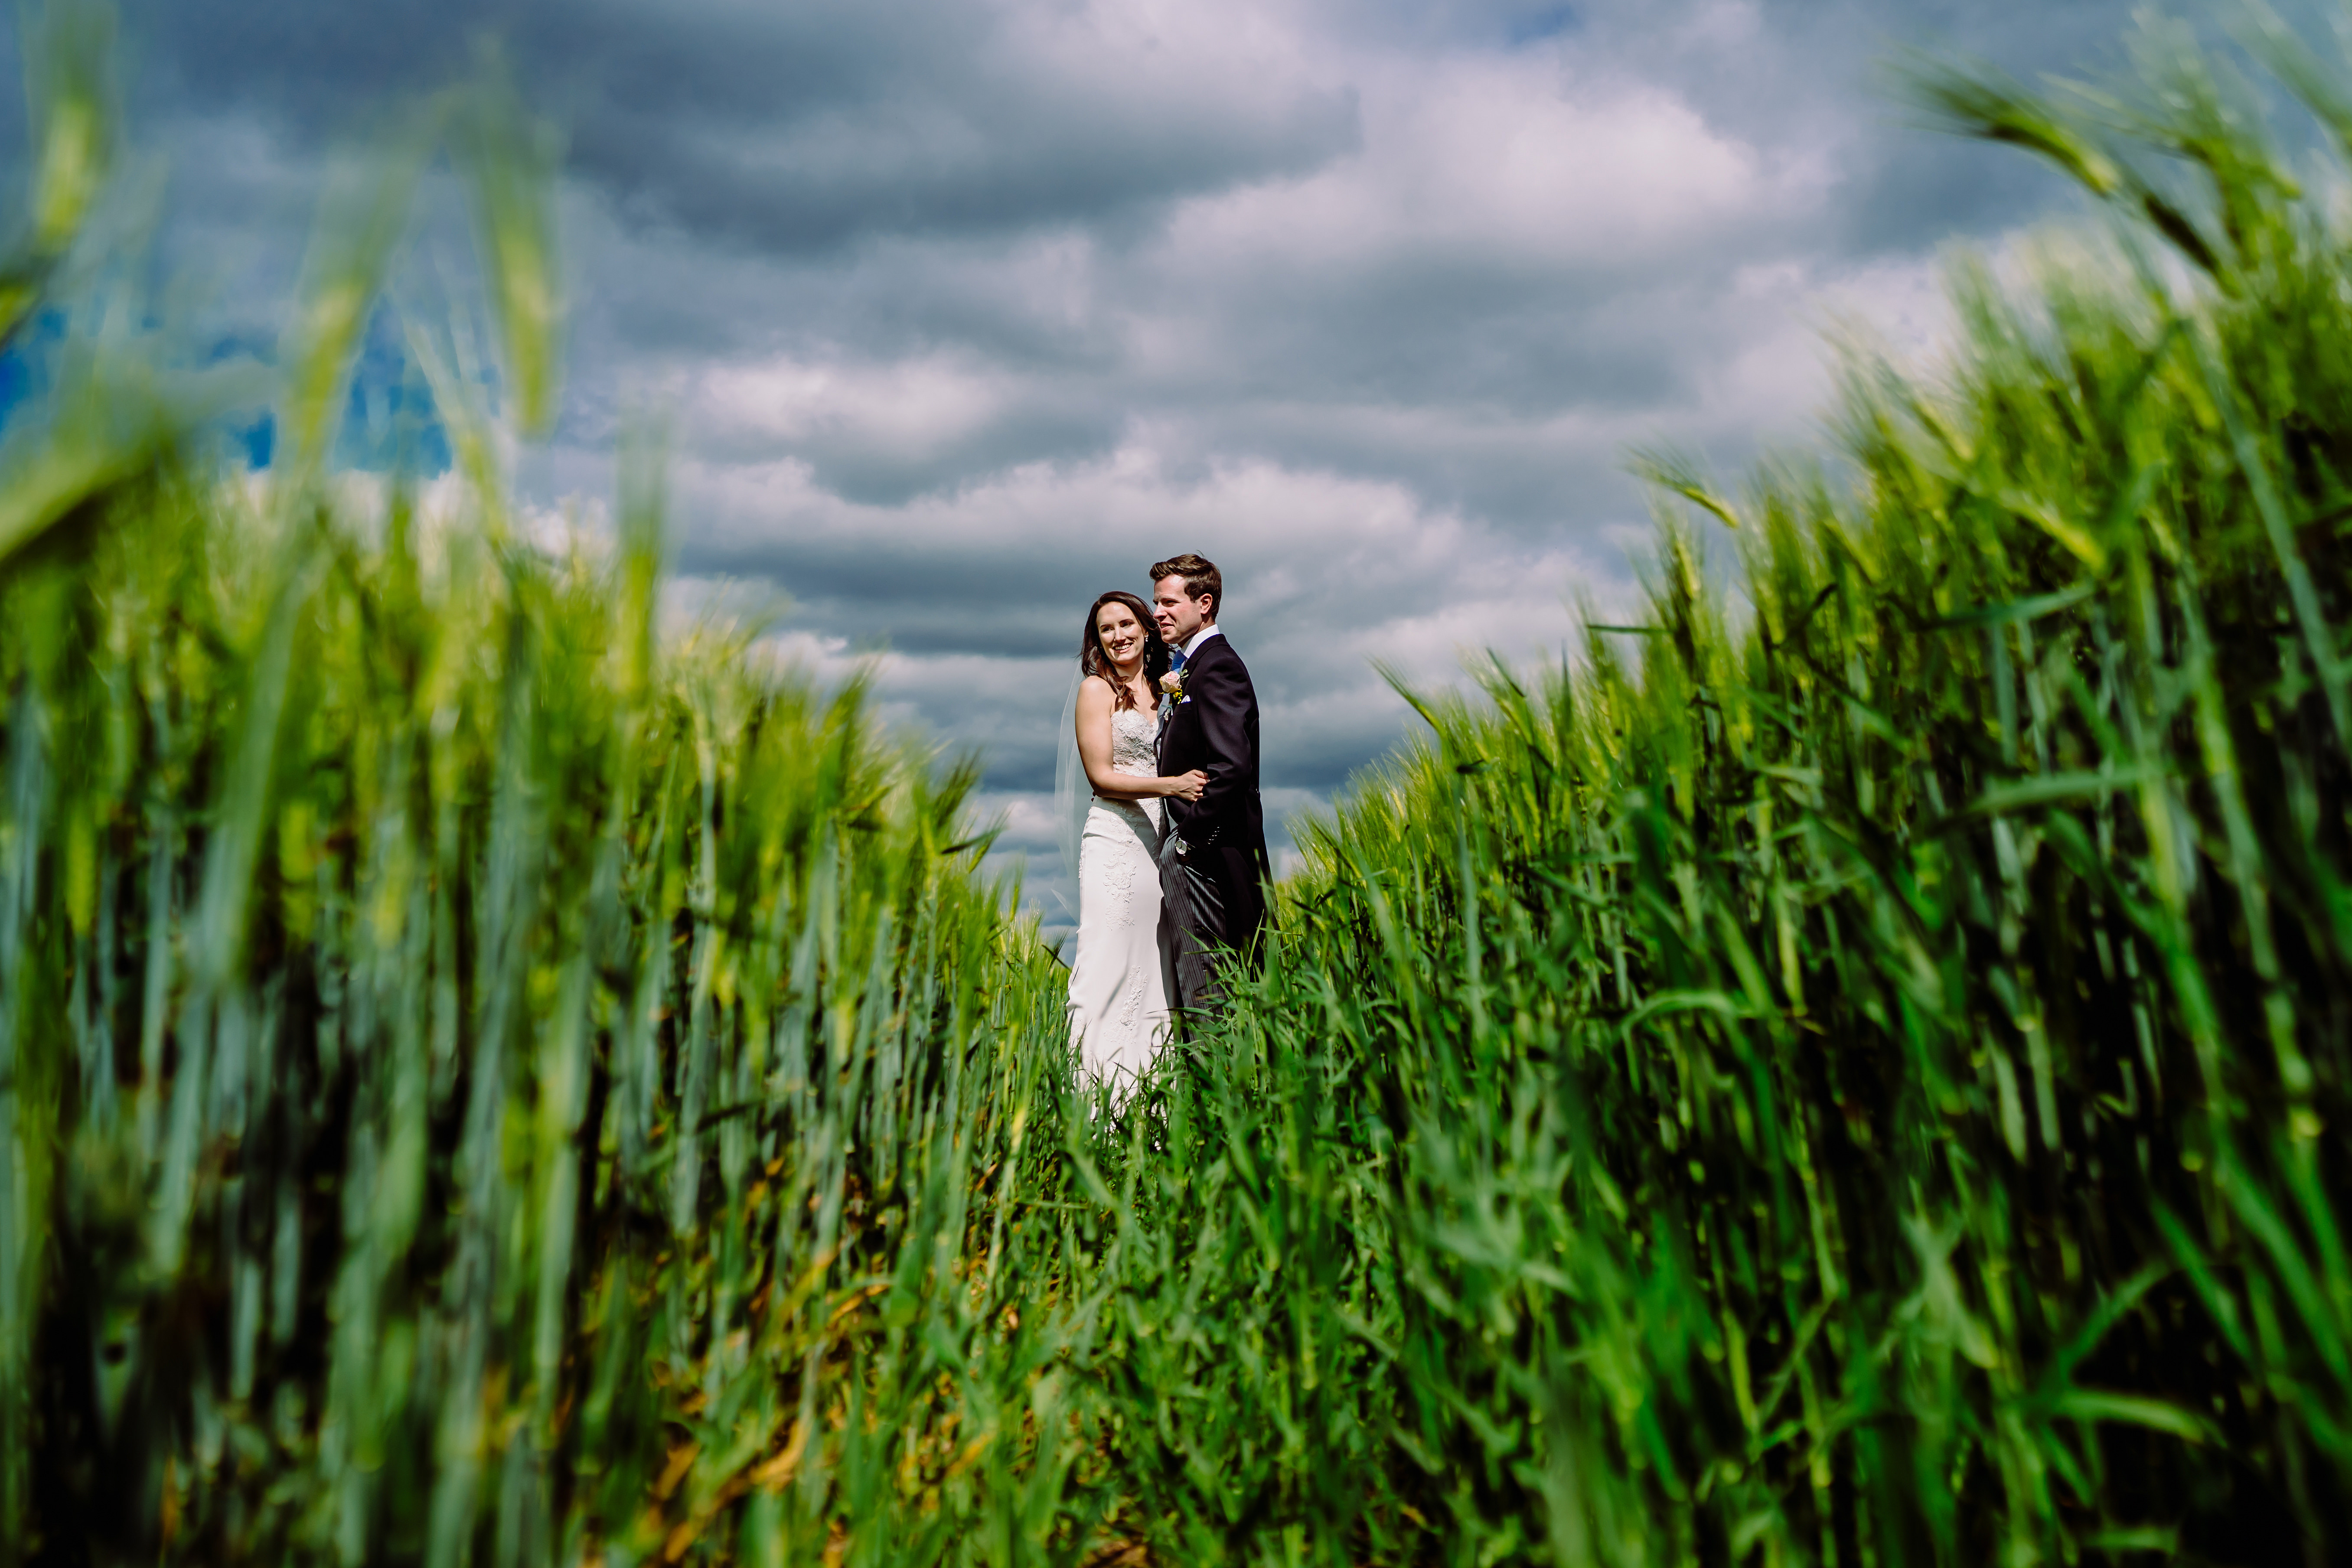 a bride and groom in a field